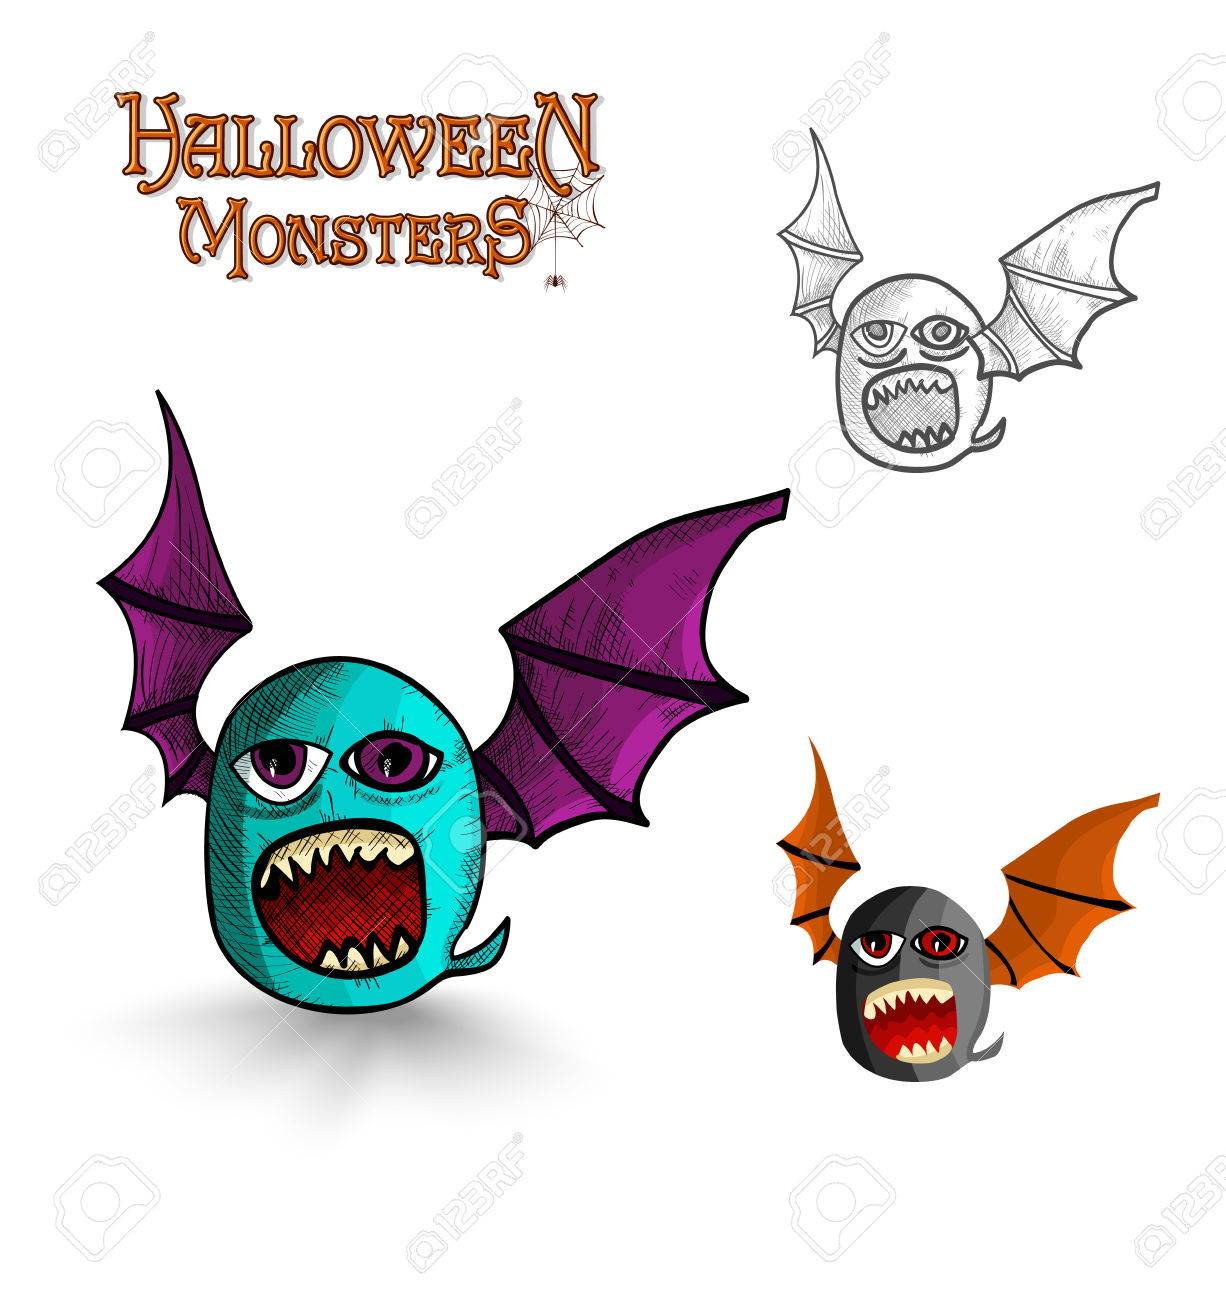 Halloween Monsters Spooky Creature Bat Set Eps10 Vector File Royalty Free Cliparts Vectors And Stock Illustration Image 22691626